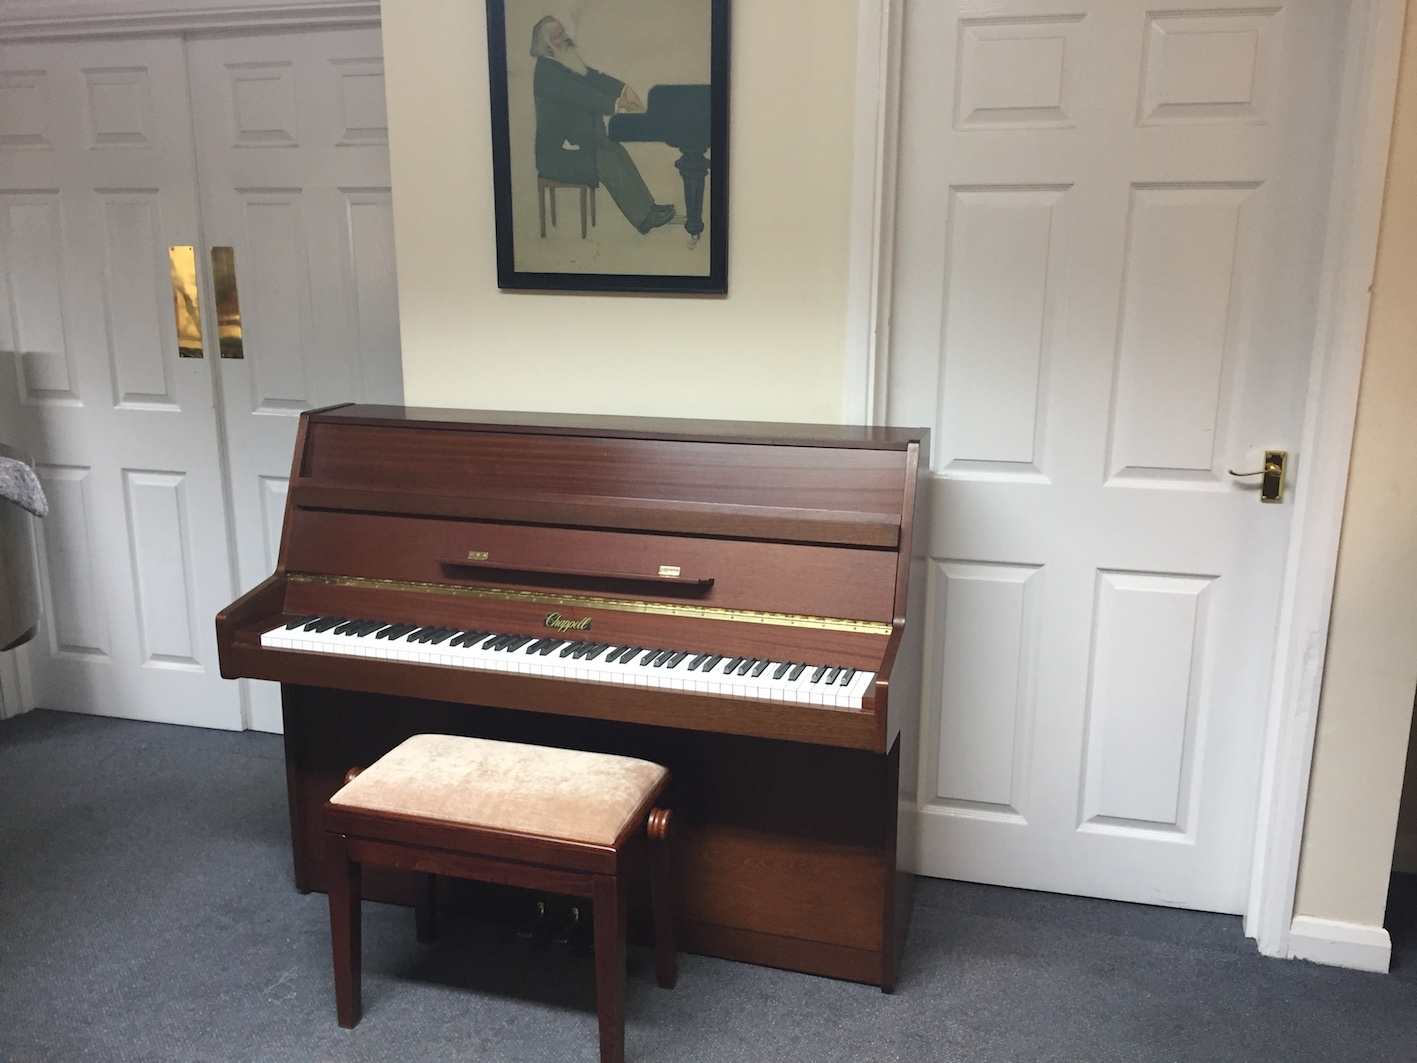 Dating a weber piano - How To Find The man Of Your type